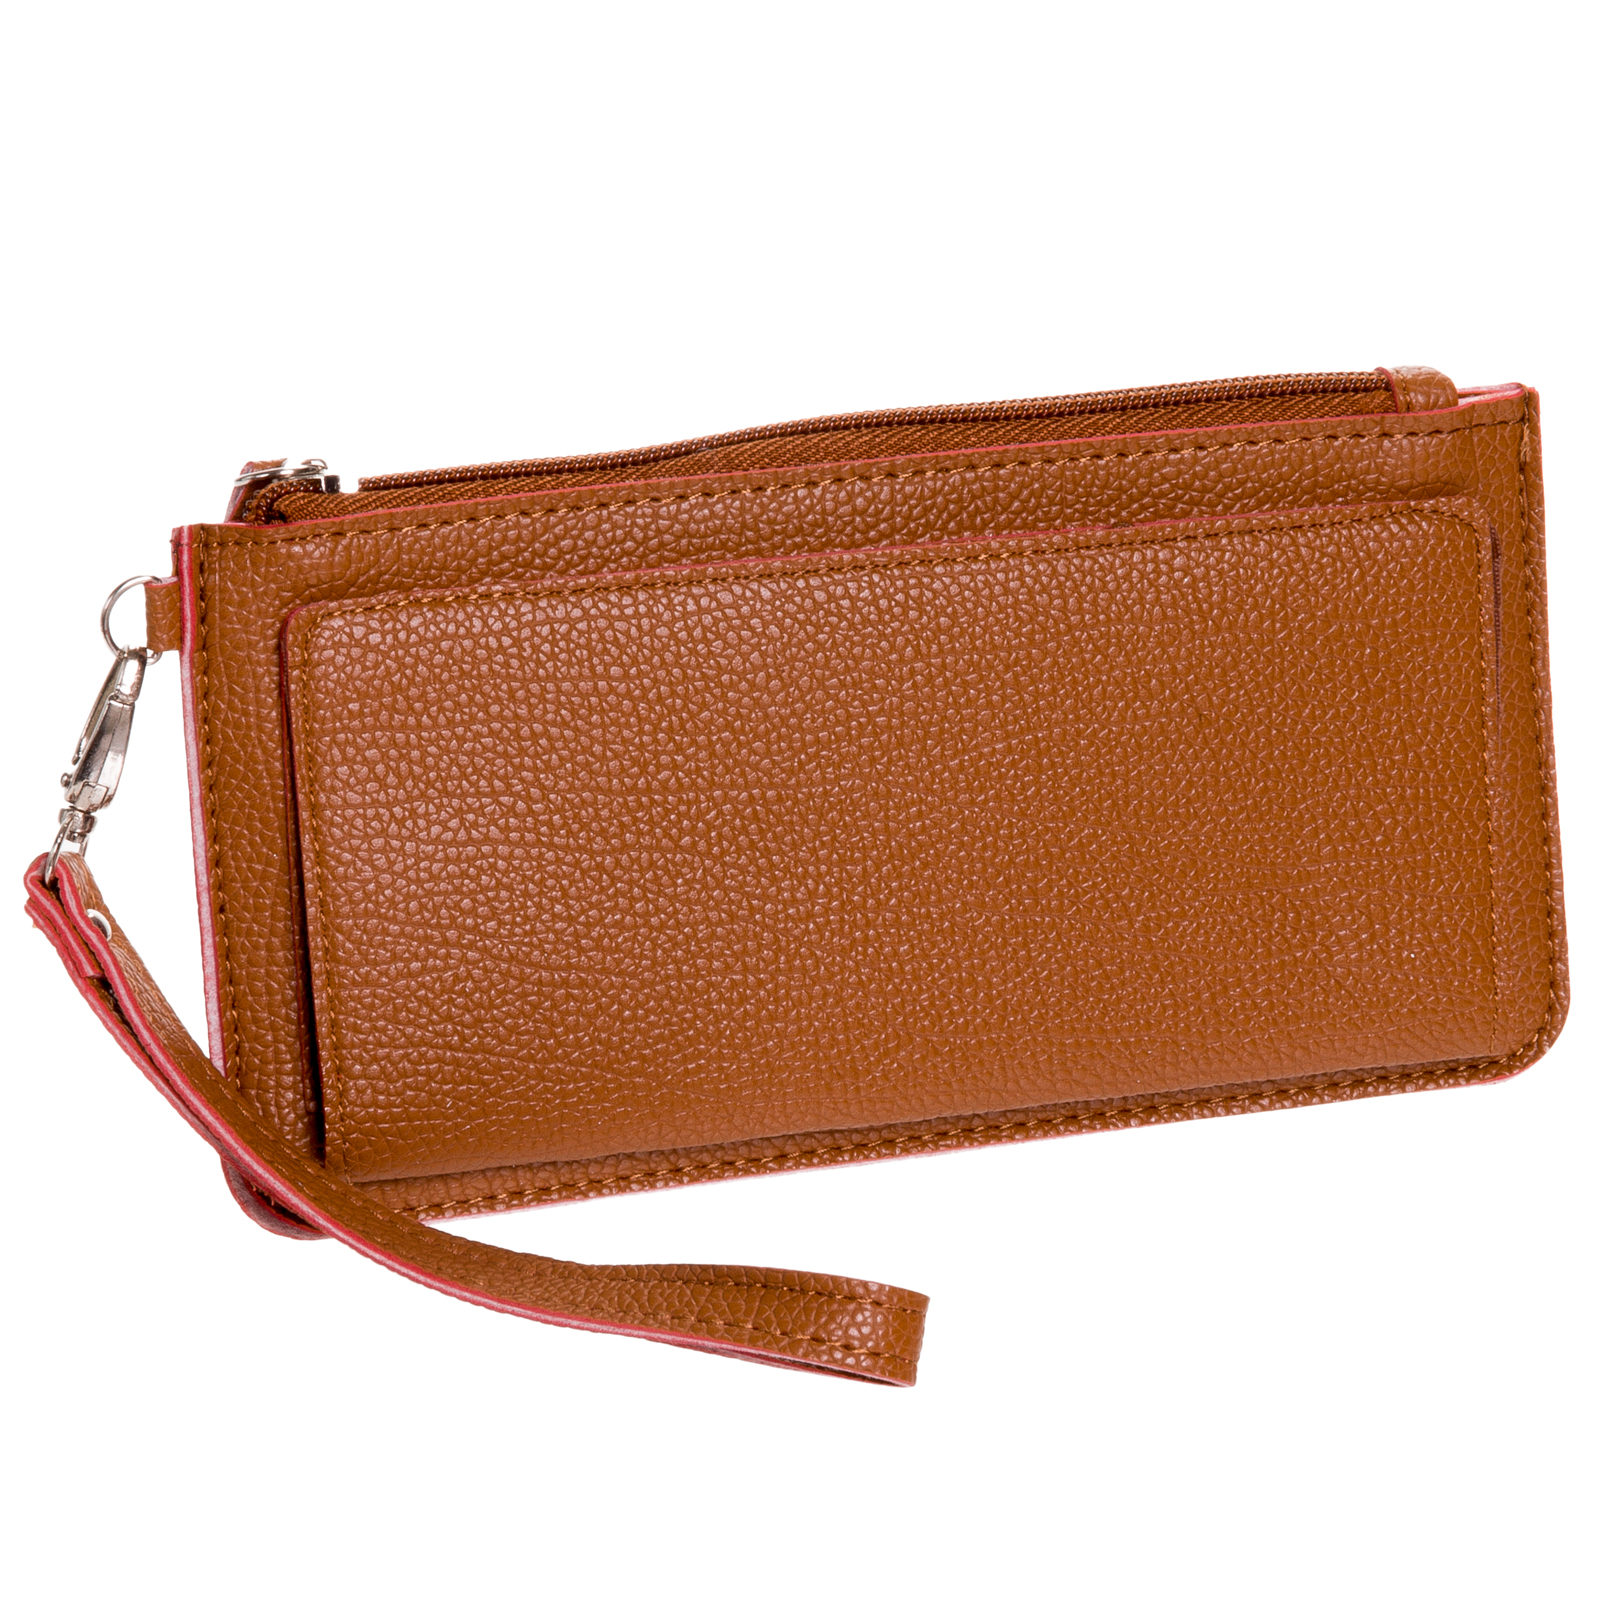 Women's Faux Leather Thin Card Slot Clutch Wristlet Wallet w/ Gift Box NEW